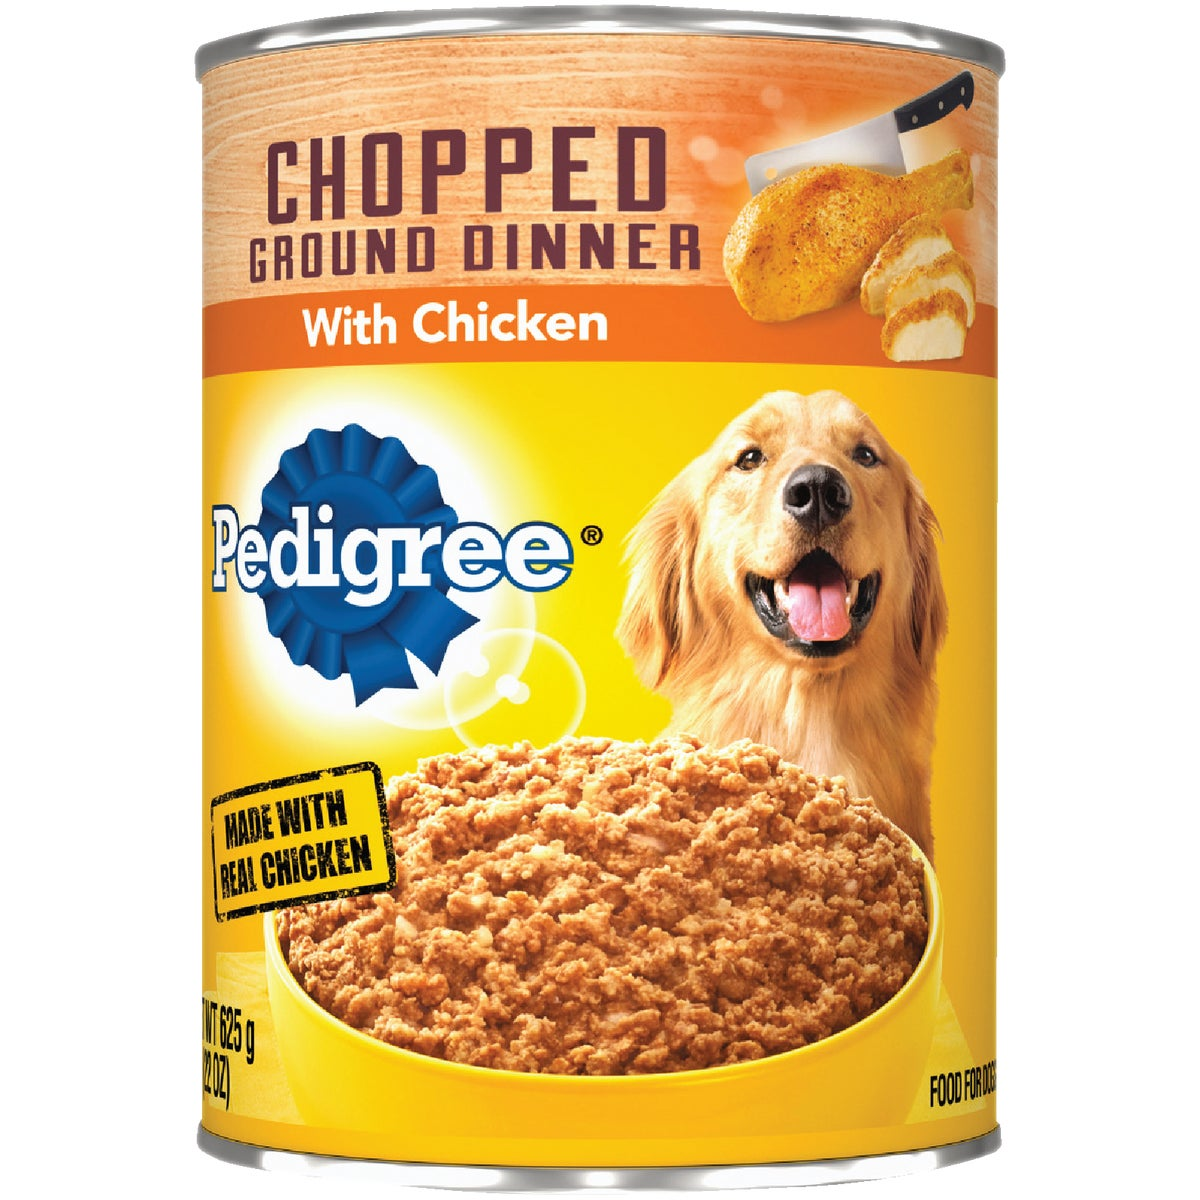 22OZ CHOP CHICK DOG FOOD - 11076 by Mars Pedigree